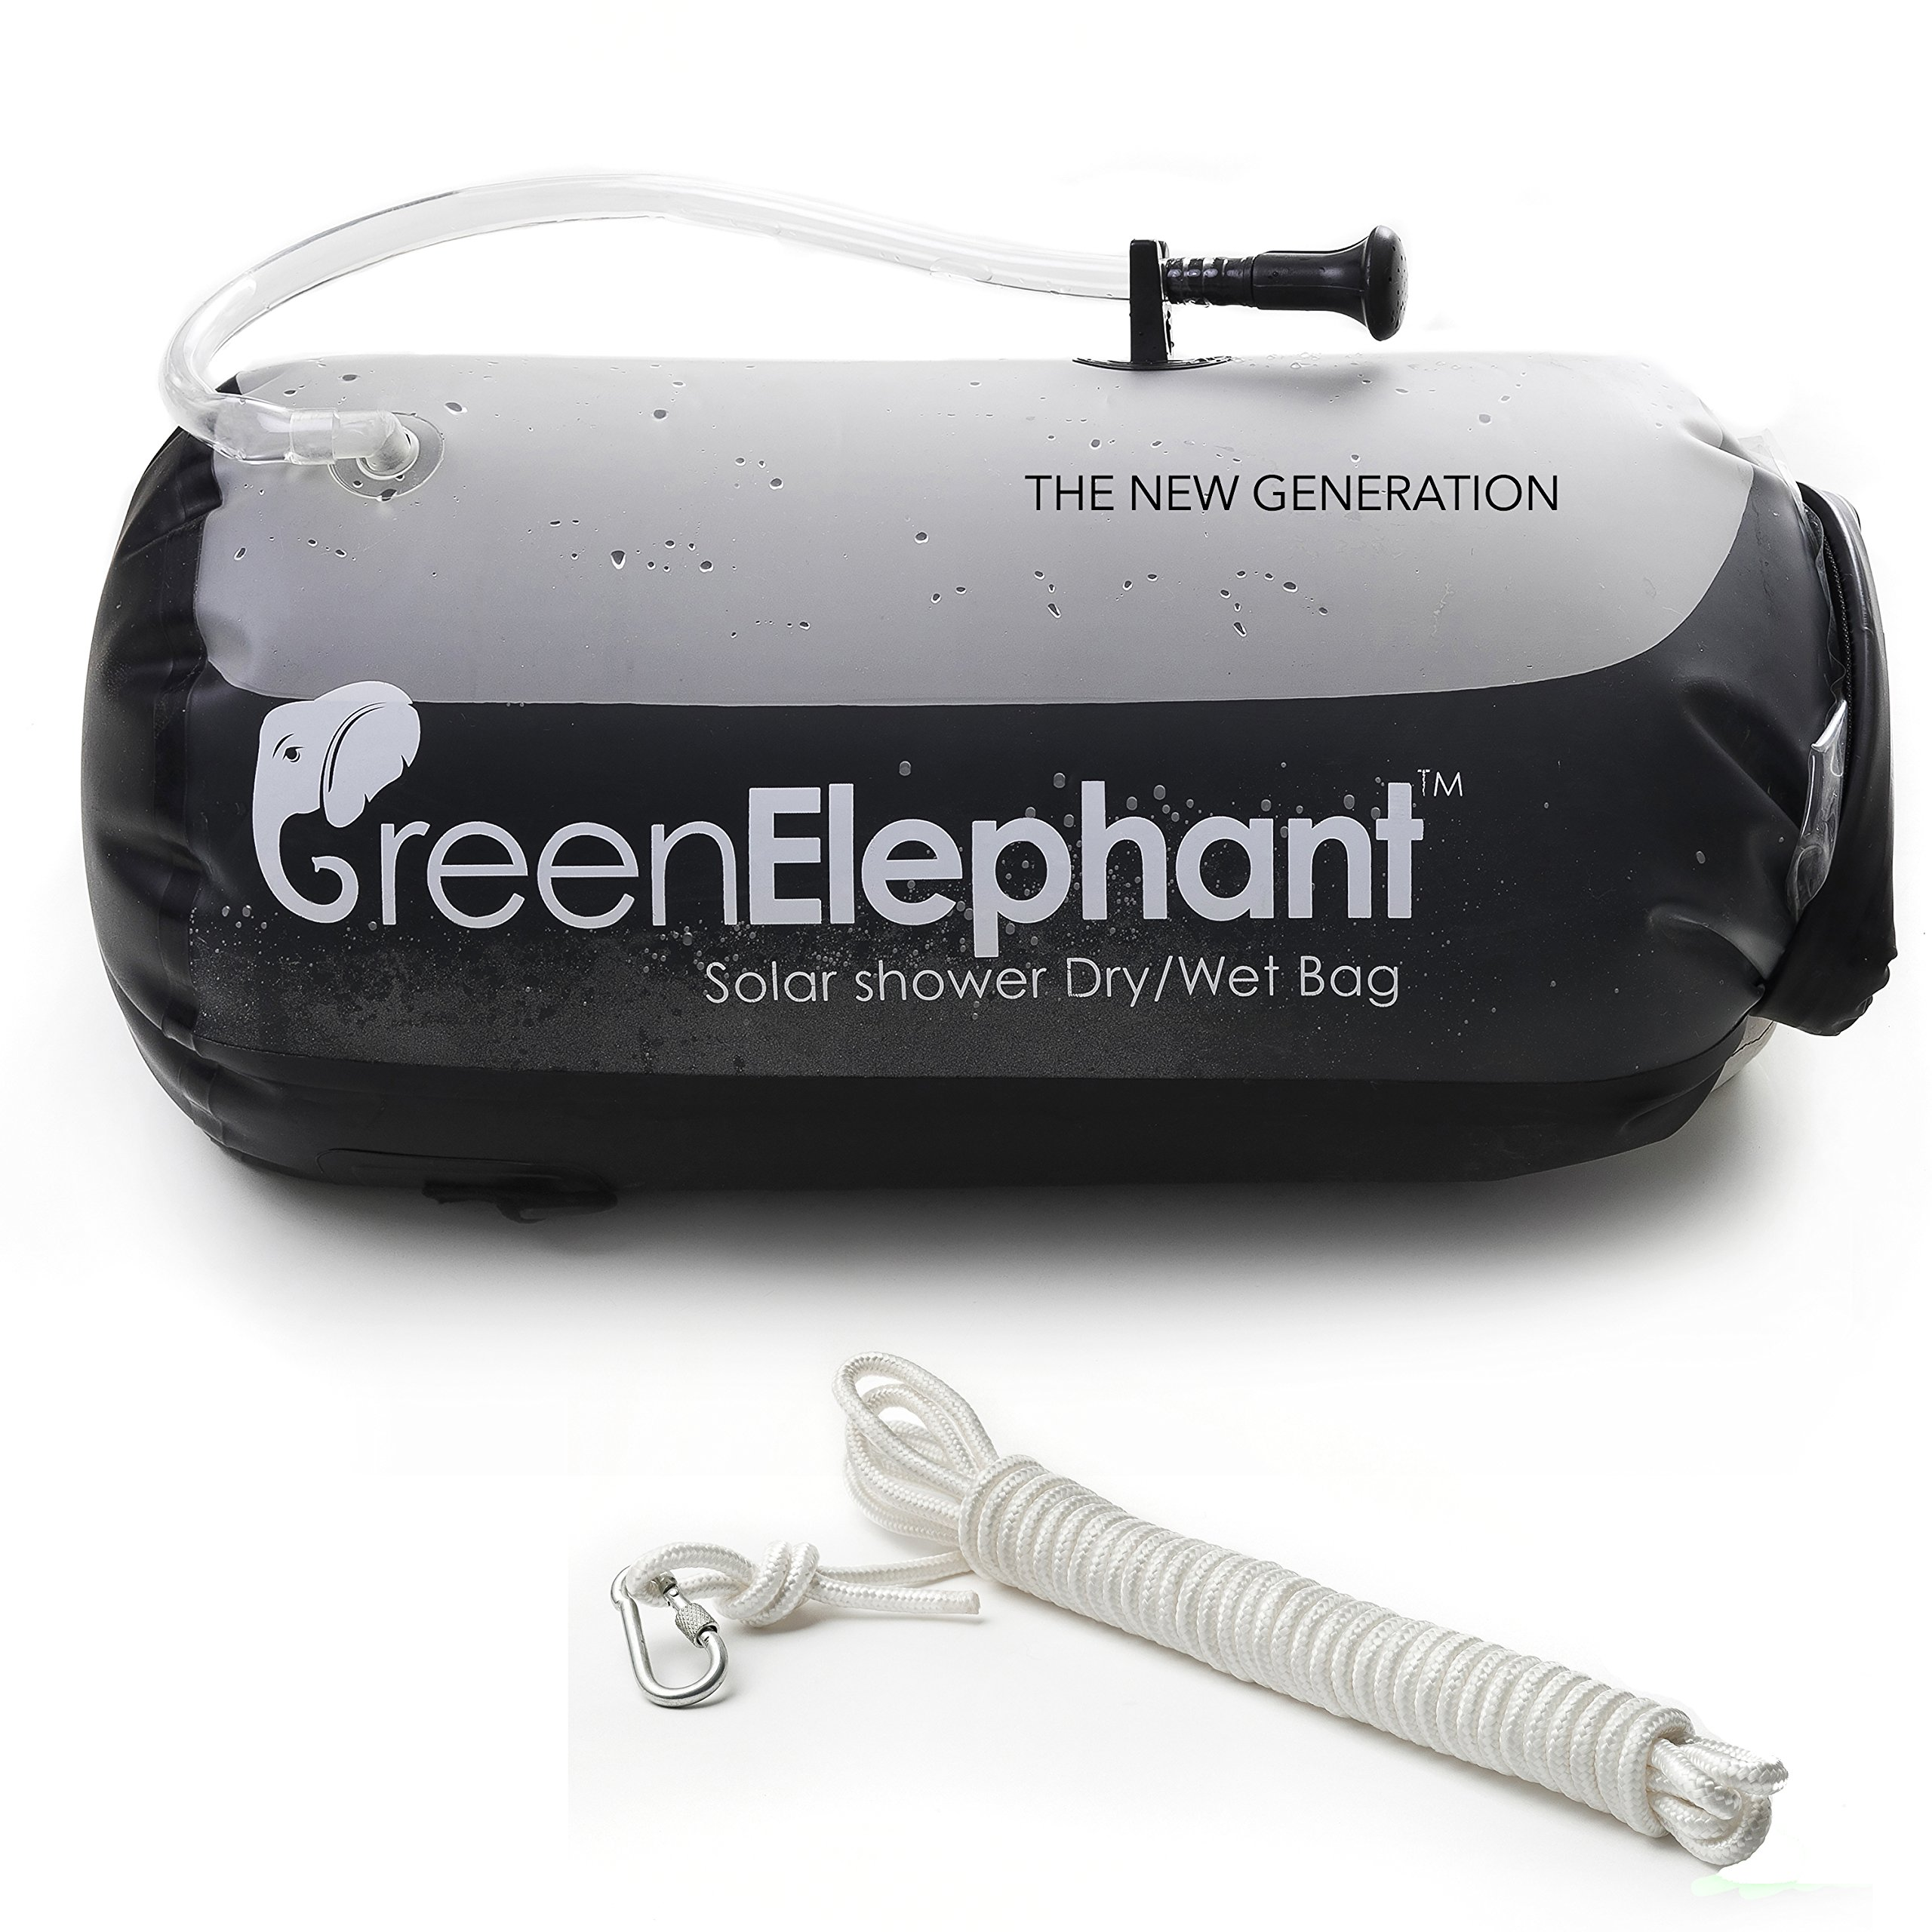 GREEN ELEPHANT 2-in-1 Solar Shower & Dry Bag Non-Toxic Leakproof TPU 5-Gallon Portable Solar Shower Doubles as Dry Storage Sack for Camping, Hiking, Fishing, Boating, Beach+Shower Hose, Free 5m Rope